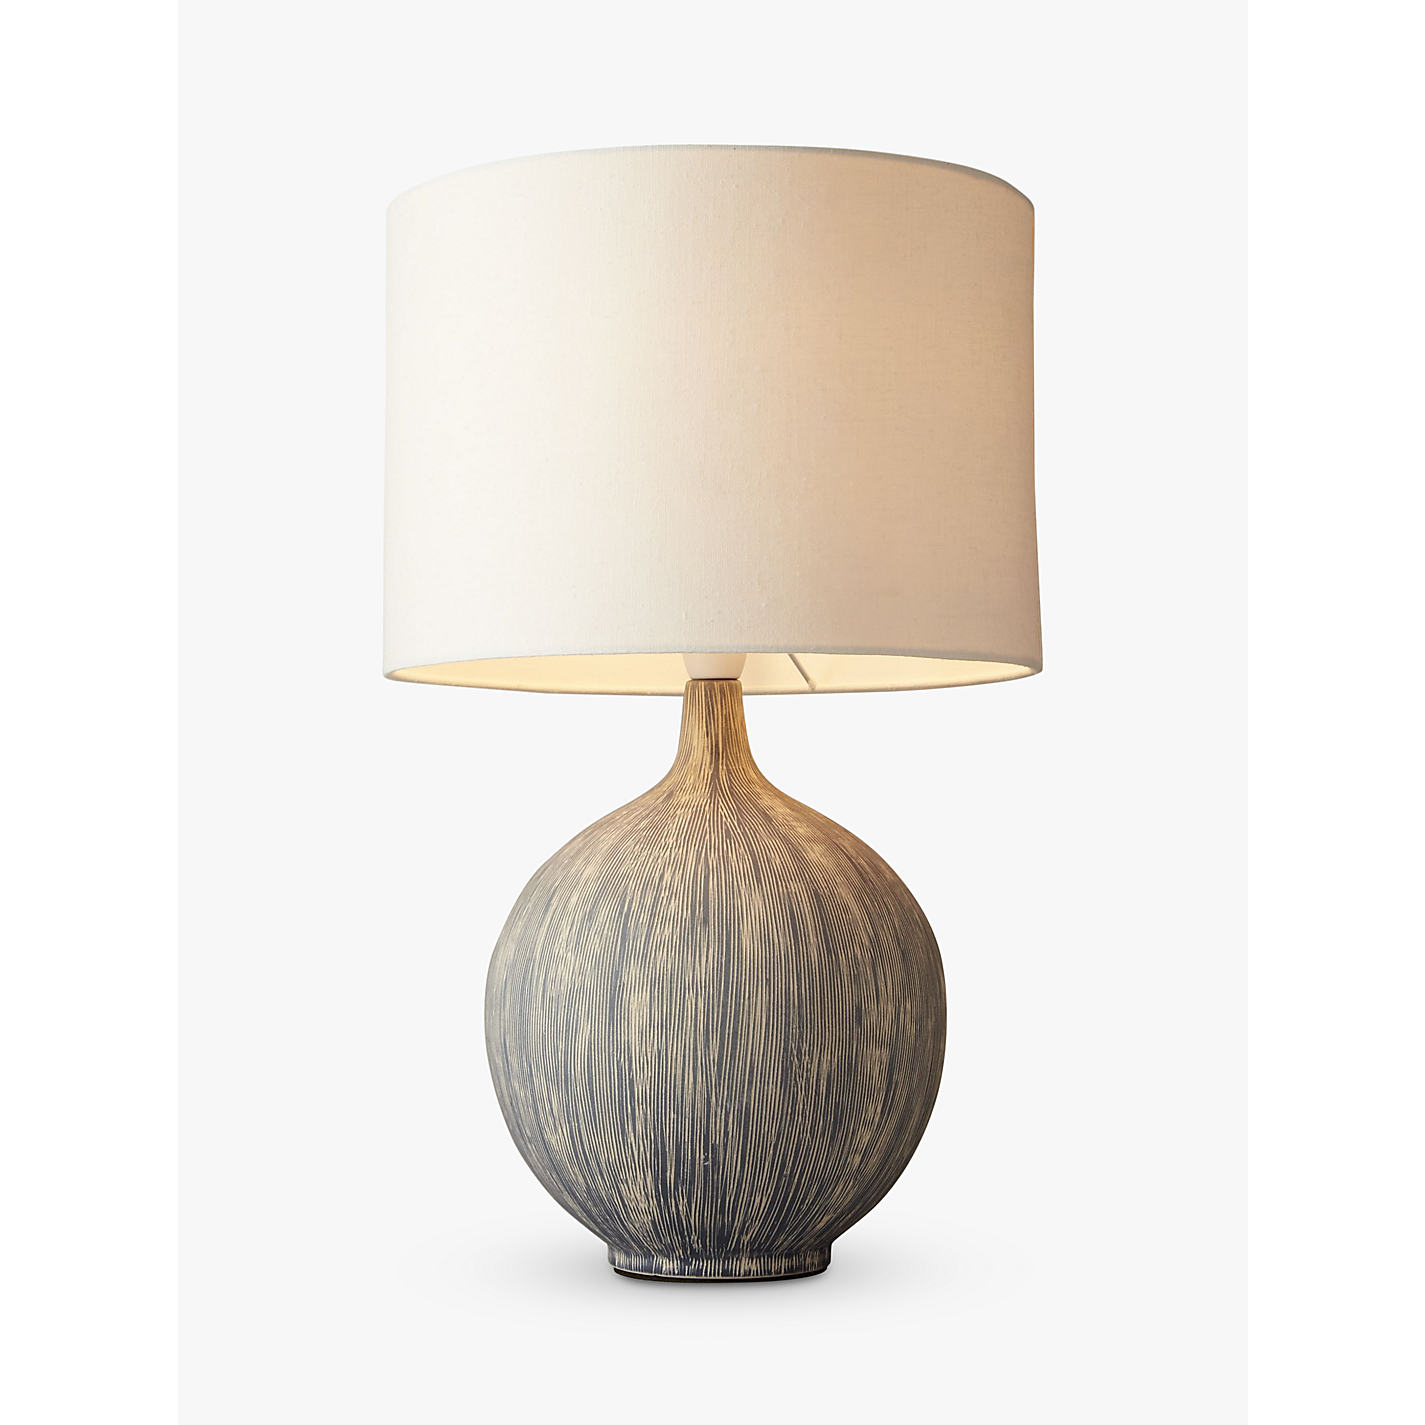 John Lewis Table Lamp